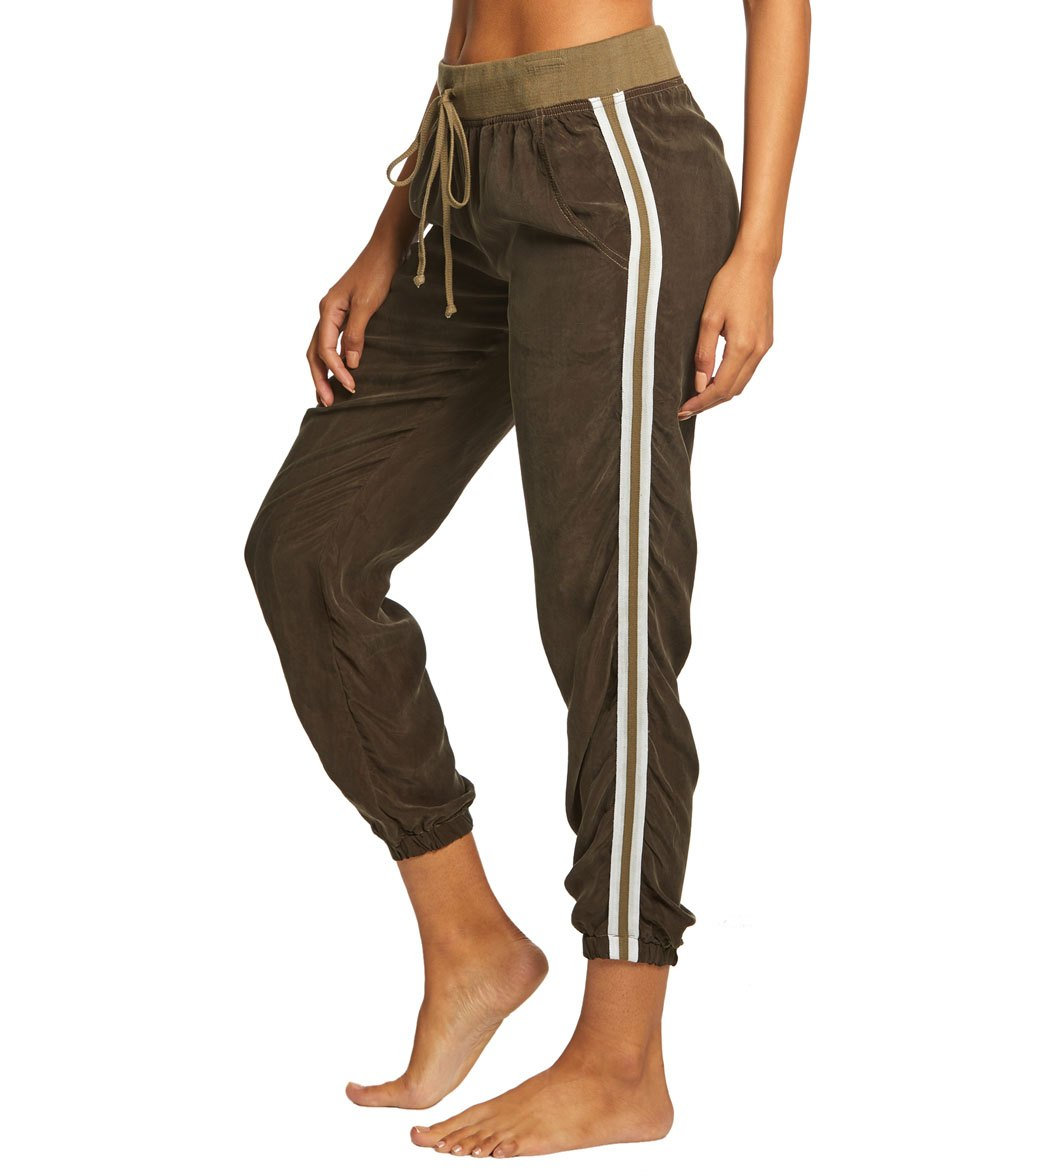 Hard Tail Speed Racer Jogger Pants - Olive Cotton